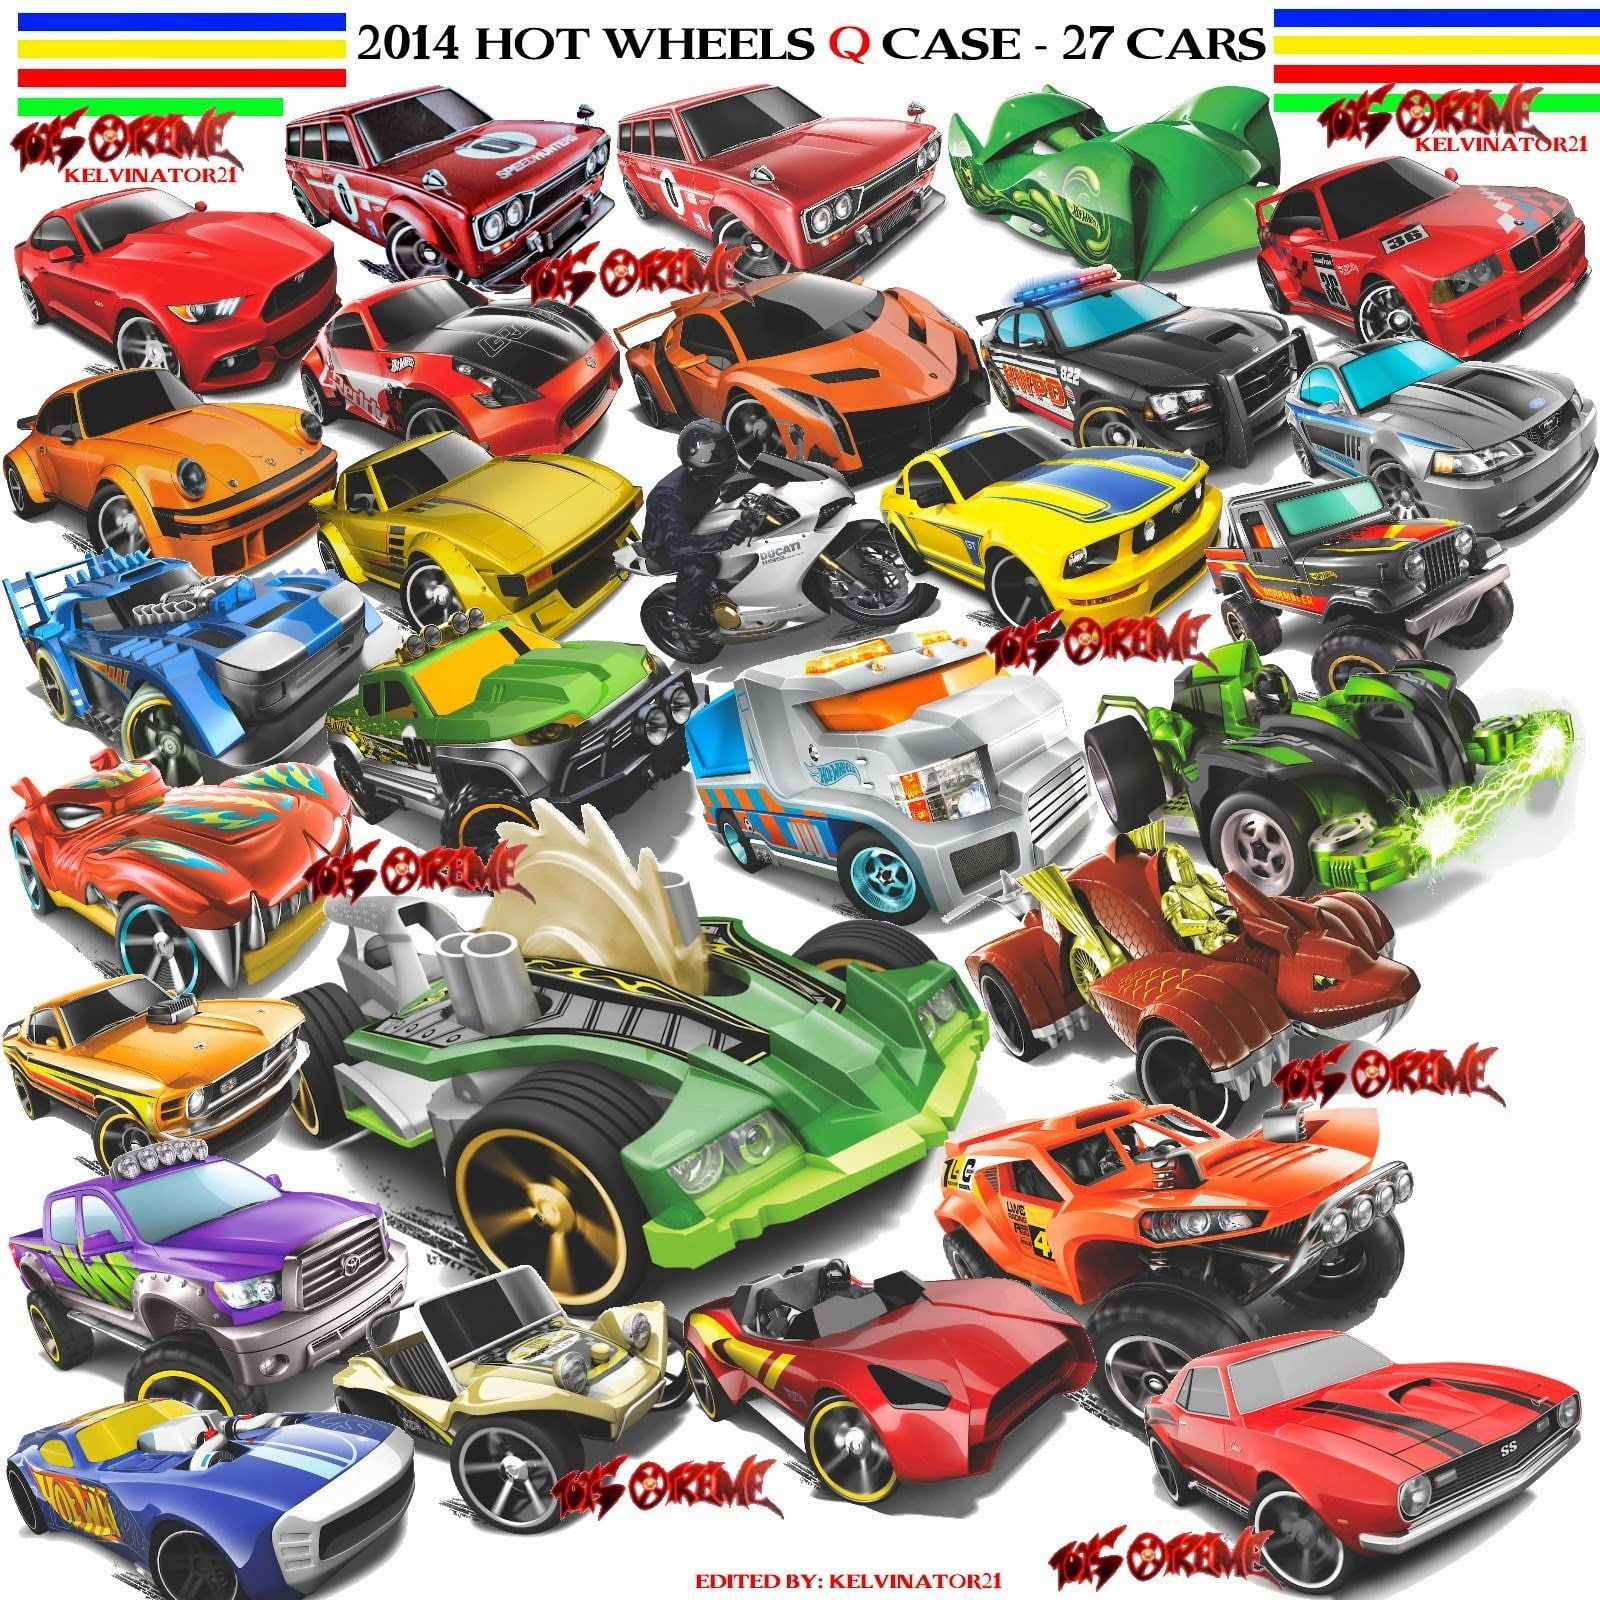 Hot Race Racing Rod Rods Toy Toys Wheels 720p Wallpaper Hdwallpaper Desktop Hot Wheels Racing Silverado Single Cab